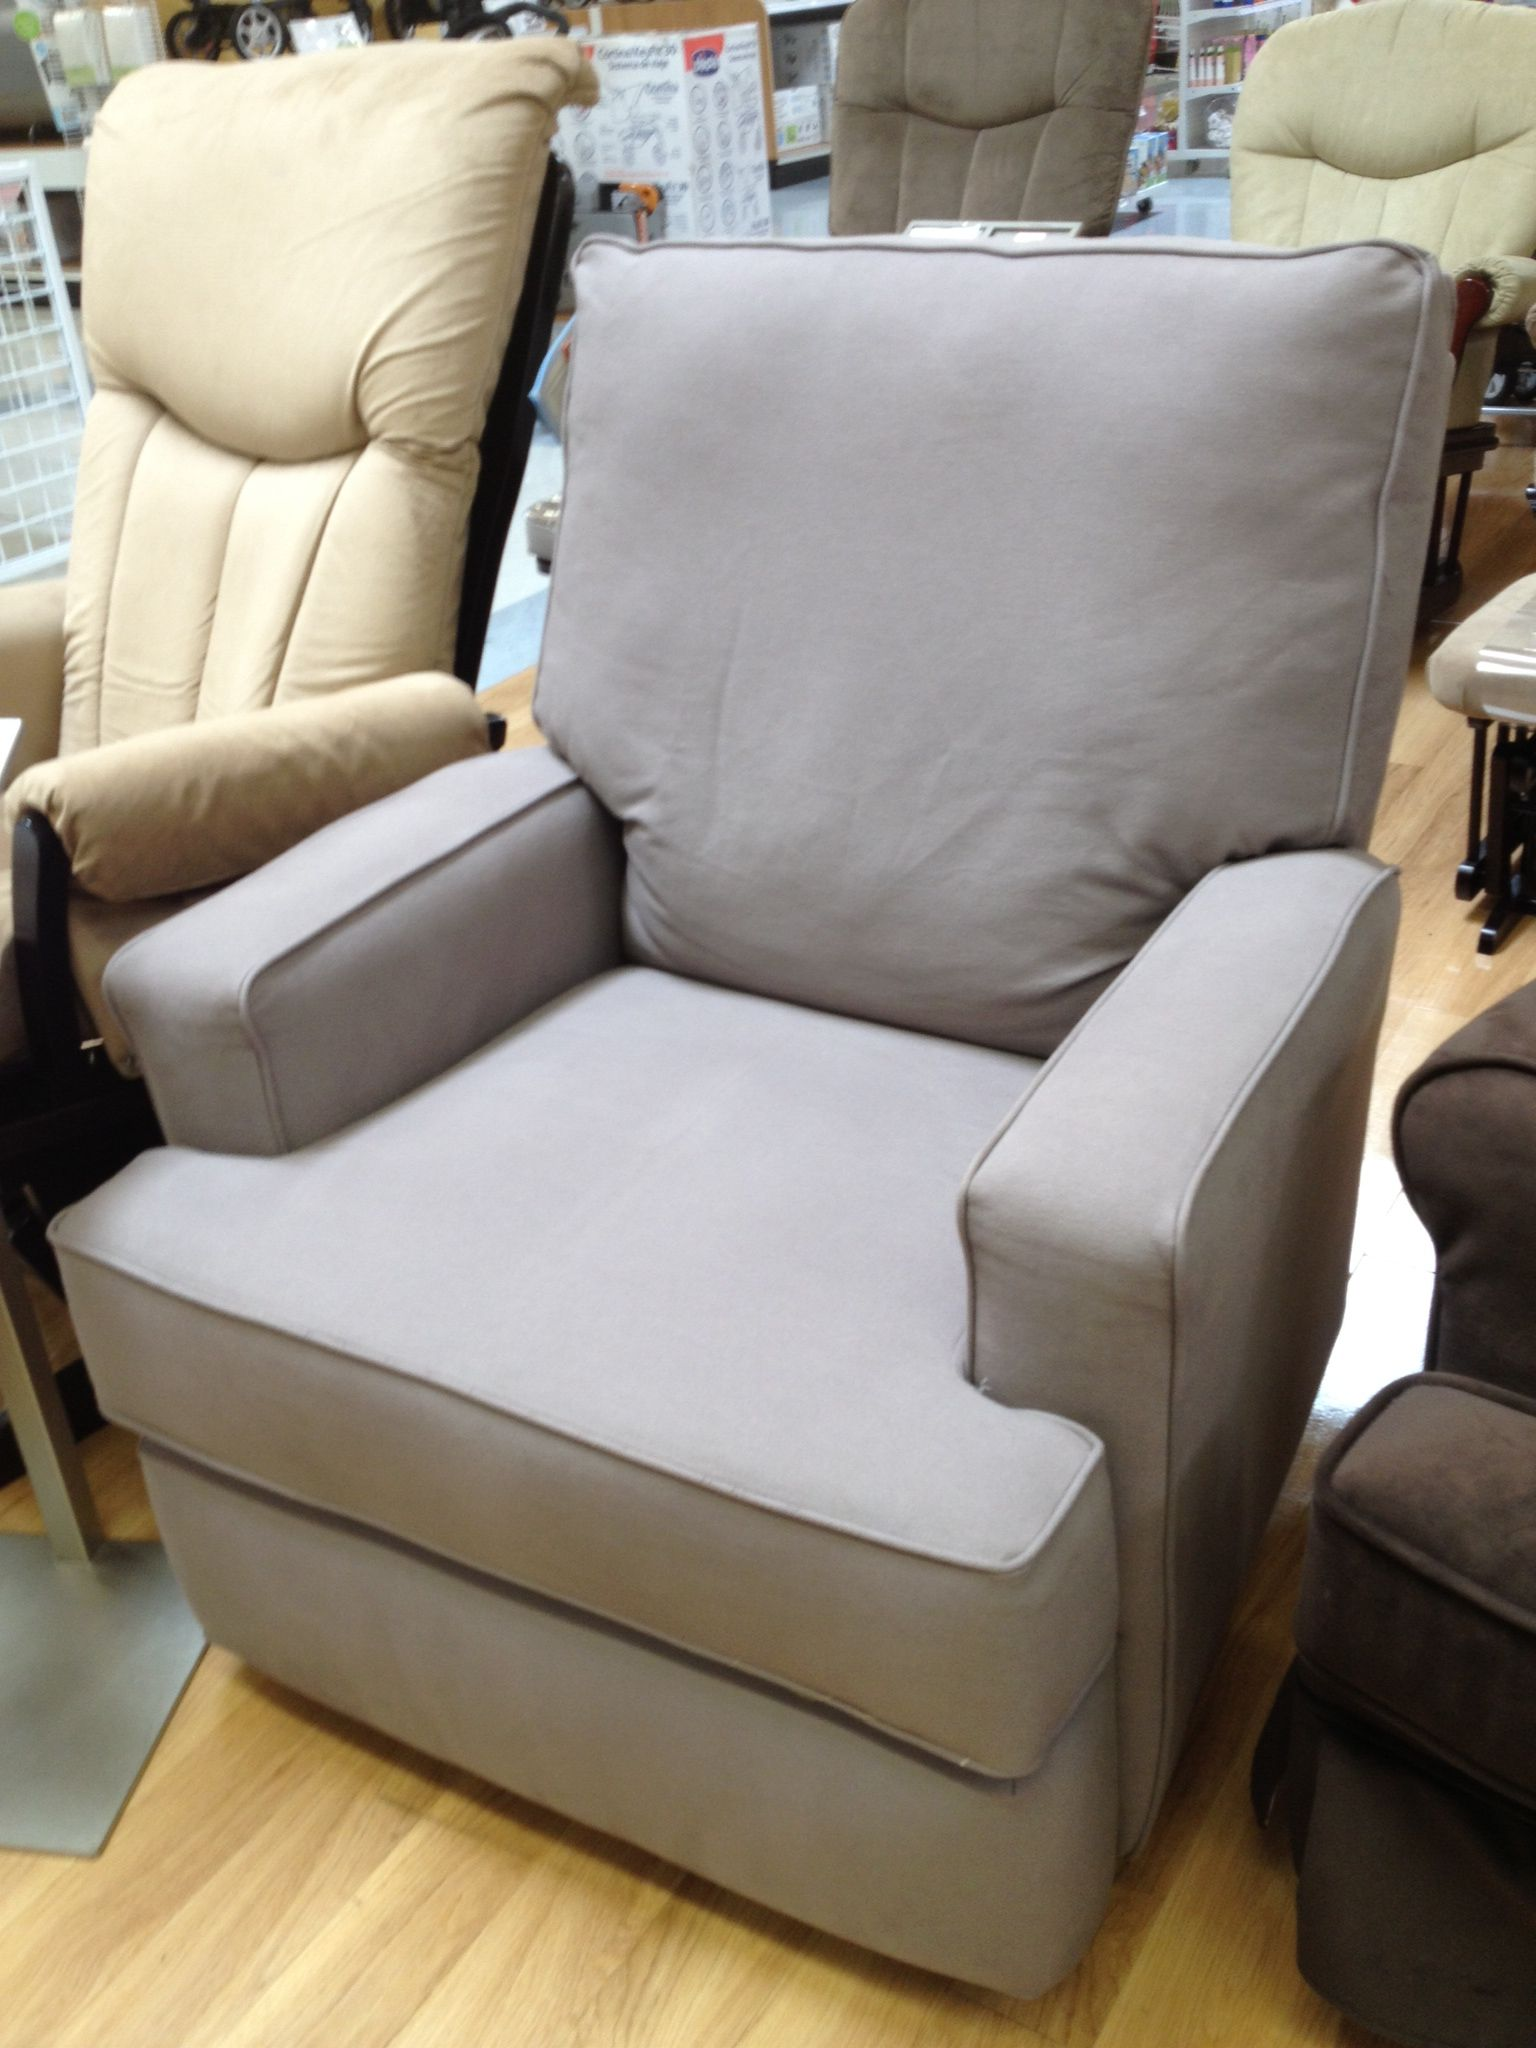 Storytime Chair Kersey Swivel Rocker Glider In Gray At Bru Best Chairs Storytime